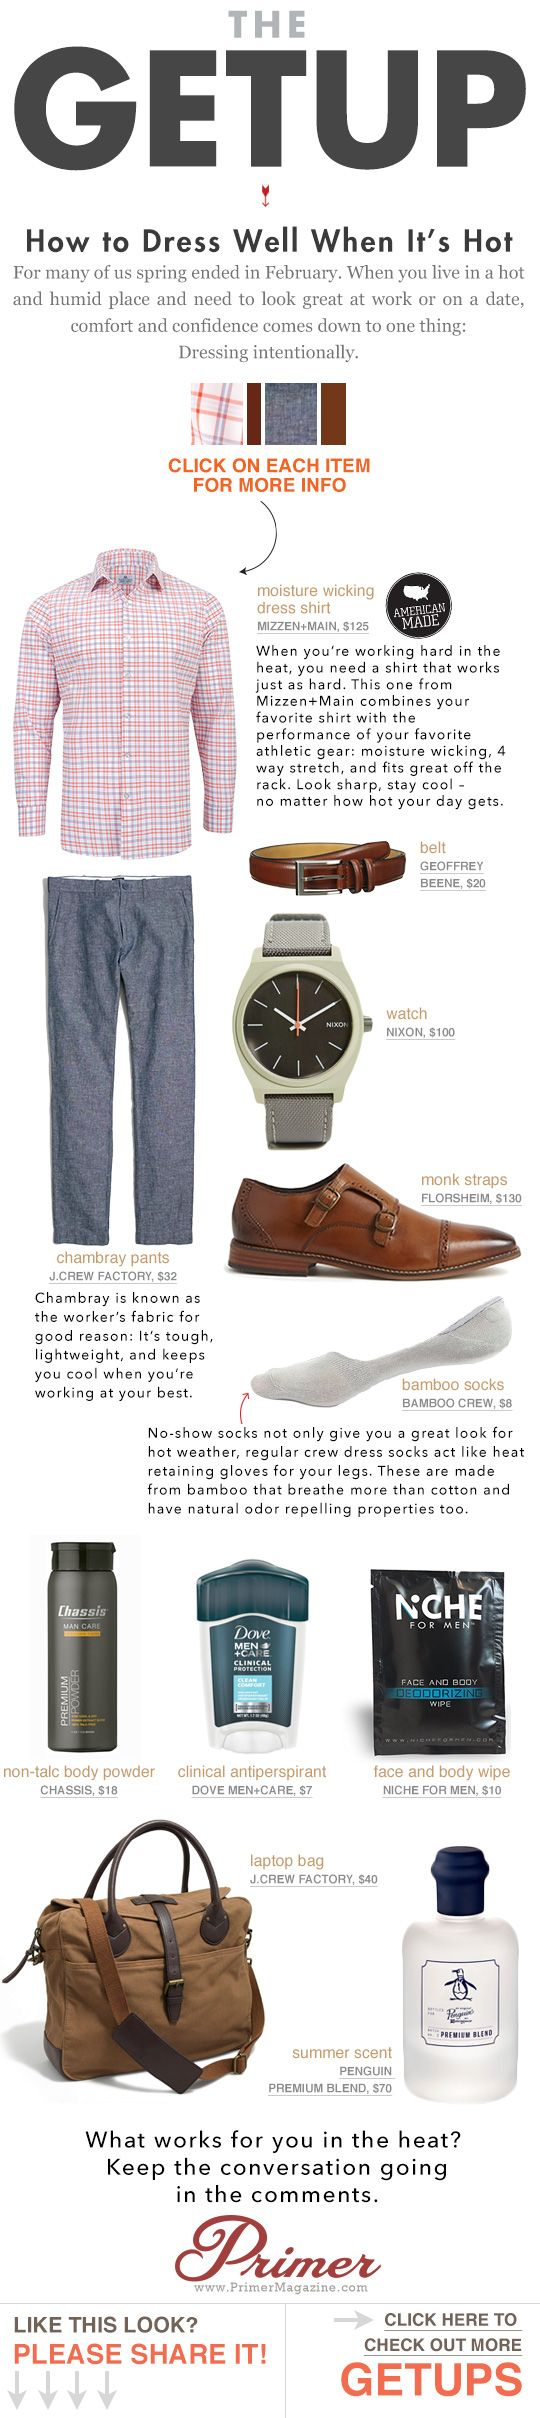 How to Dress Well When It's Hot | Primer